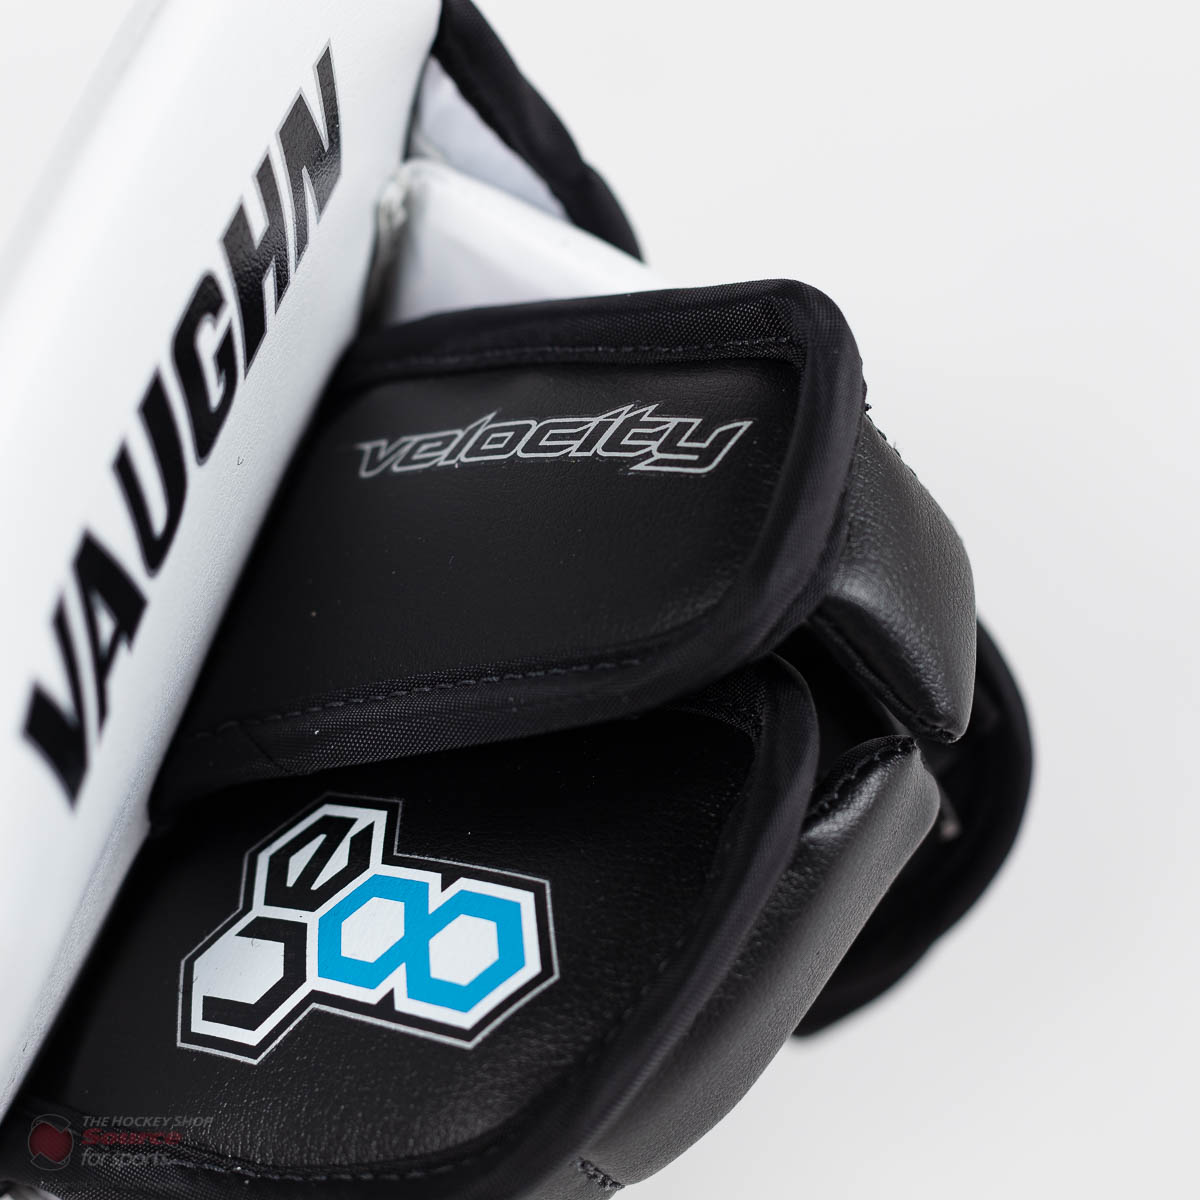 Vaughn Velocity VE8 Pro Carbon Senior Goalie Blocker